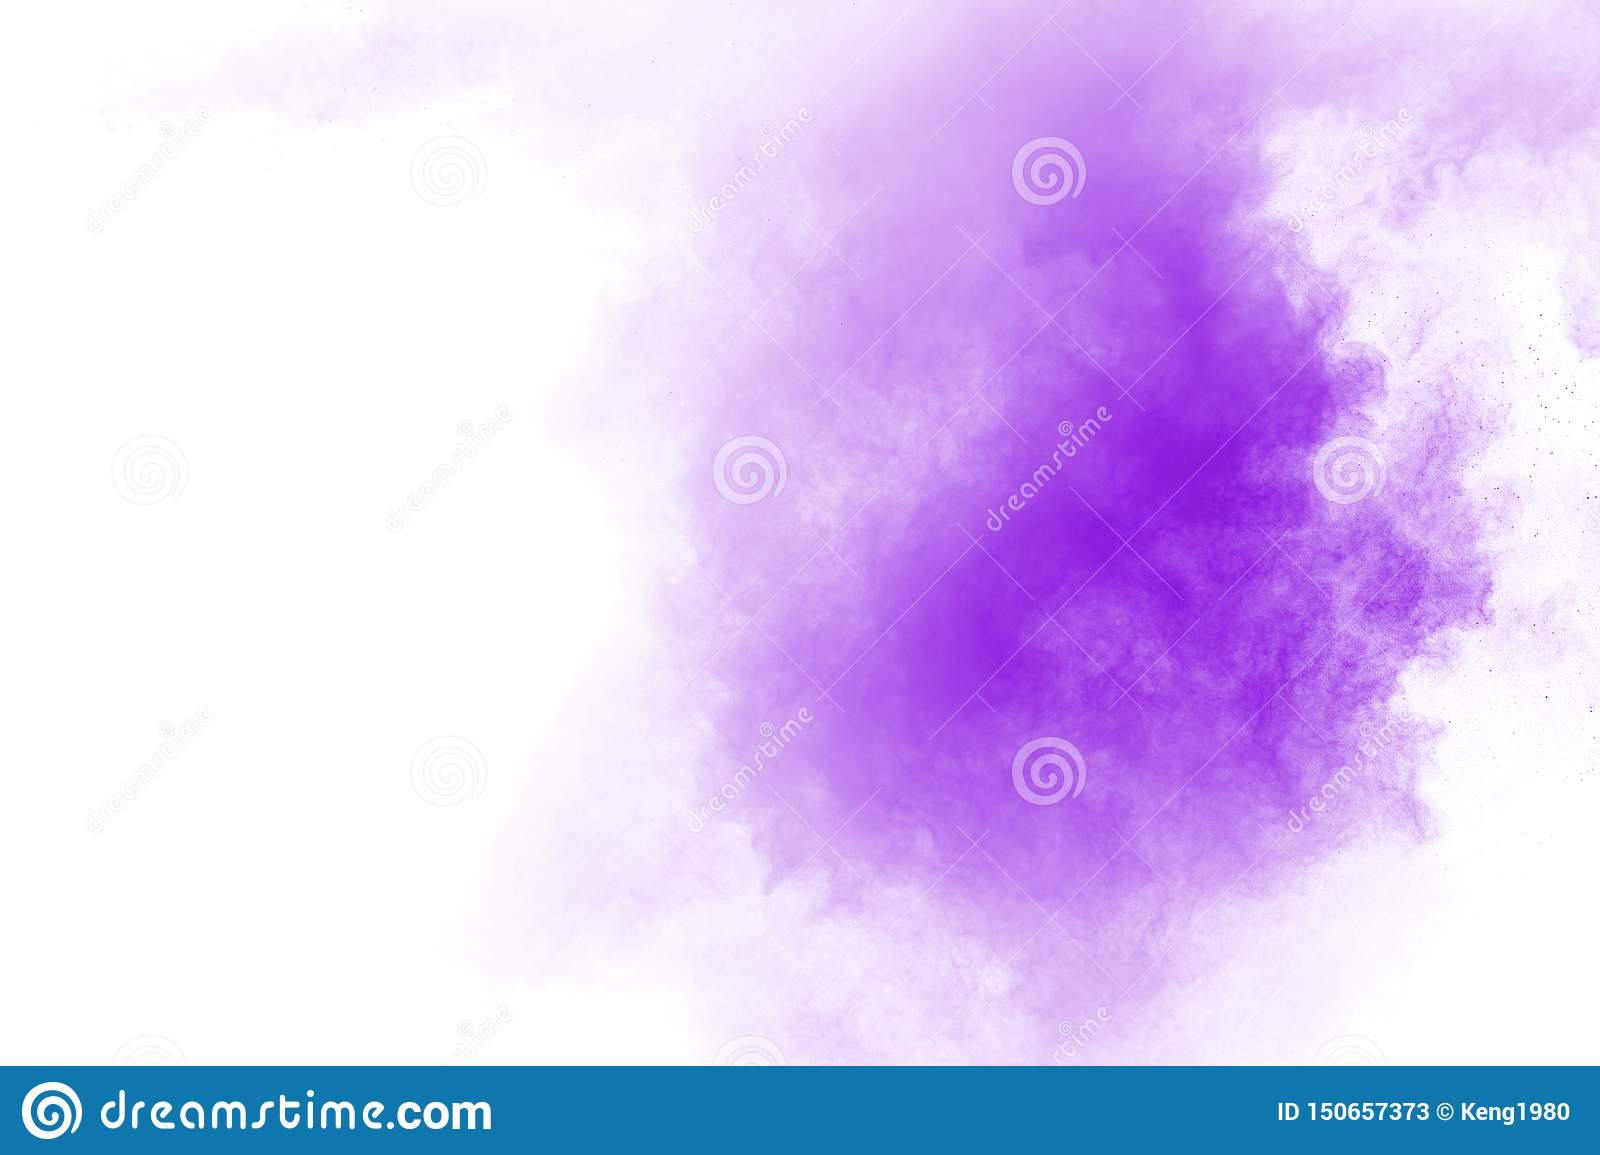 The movement of abstract dust explosion frozen purple on white background.